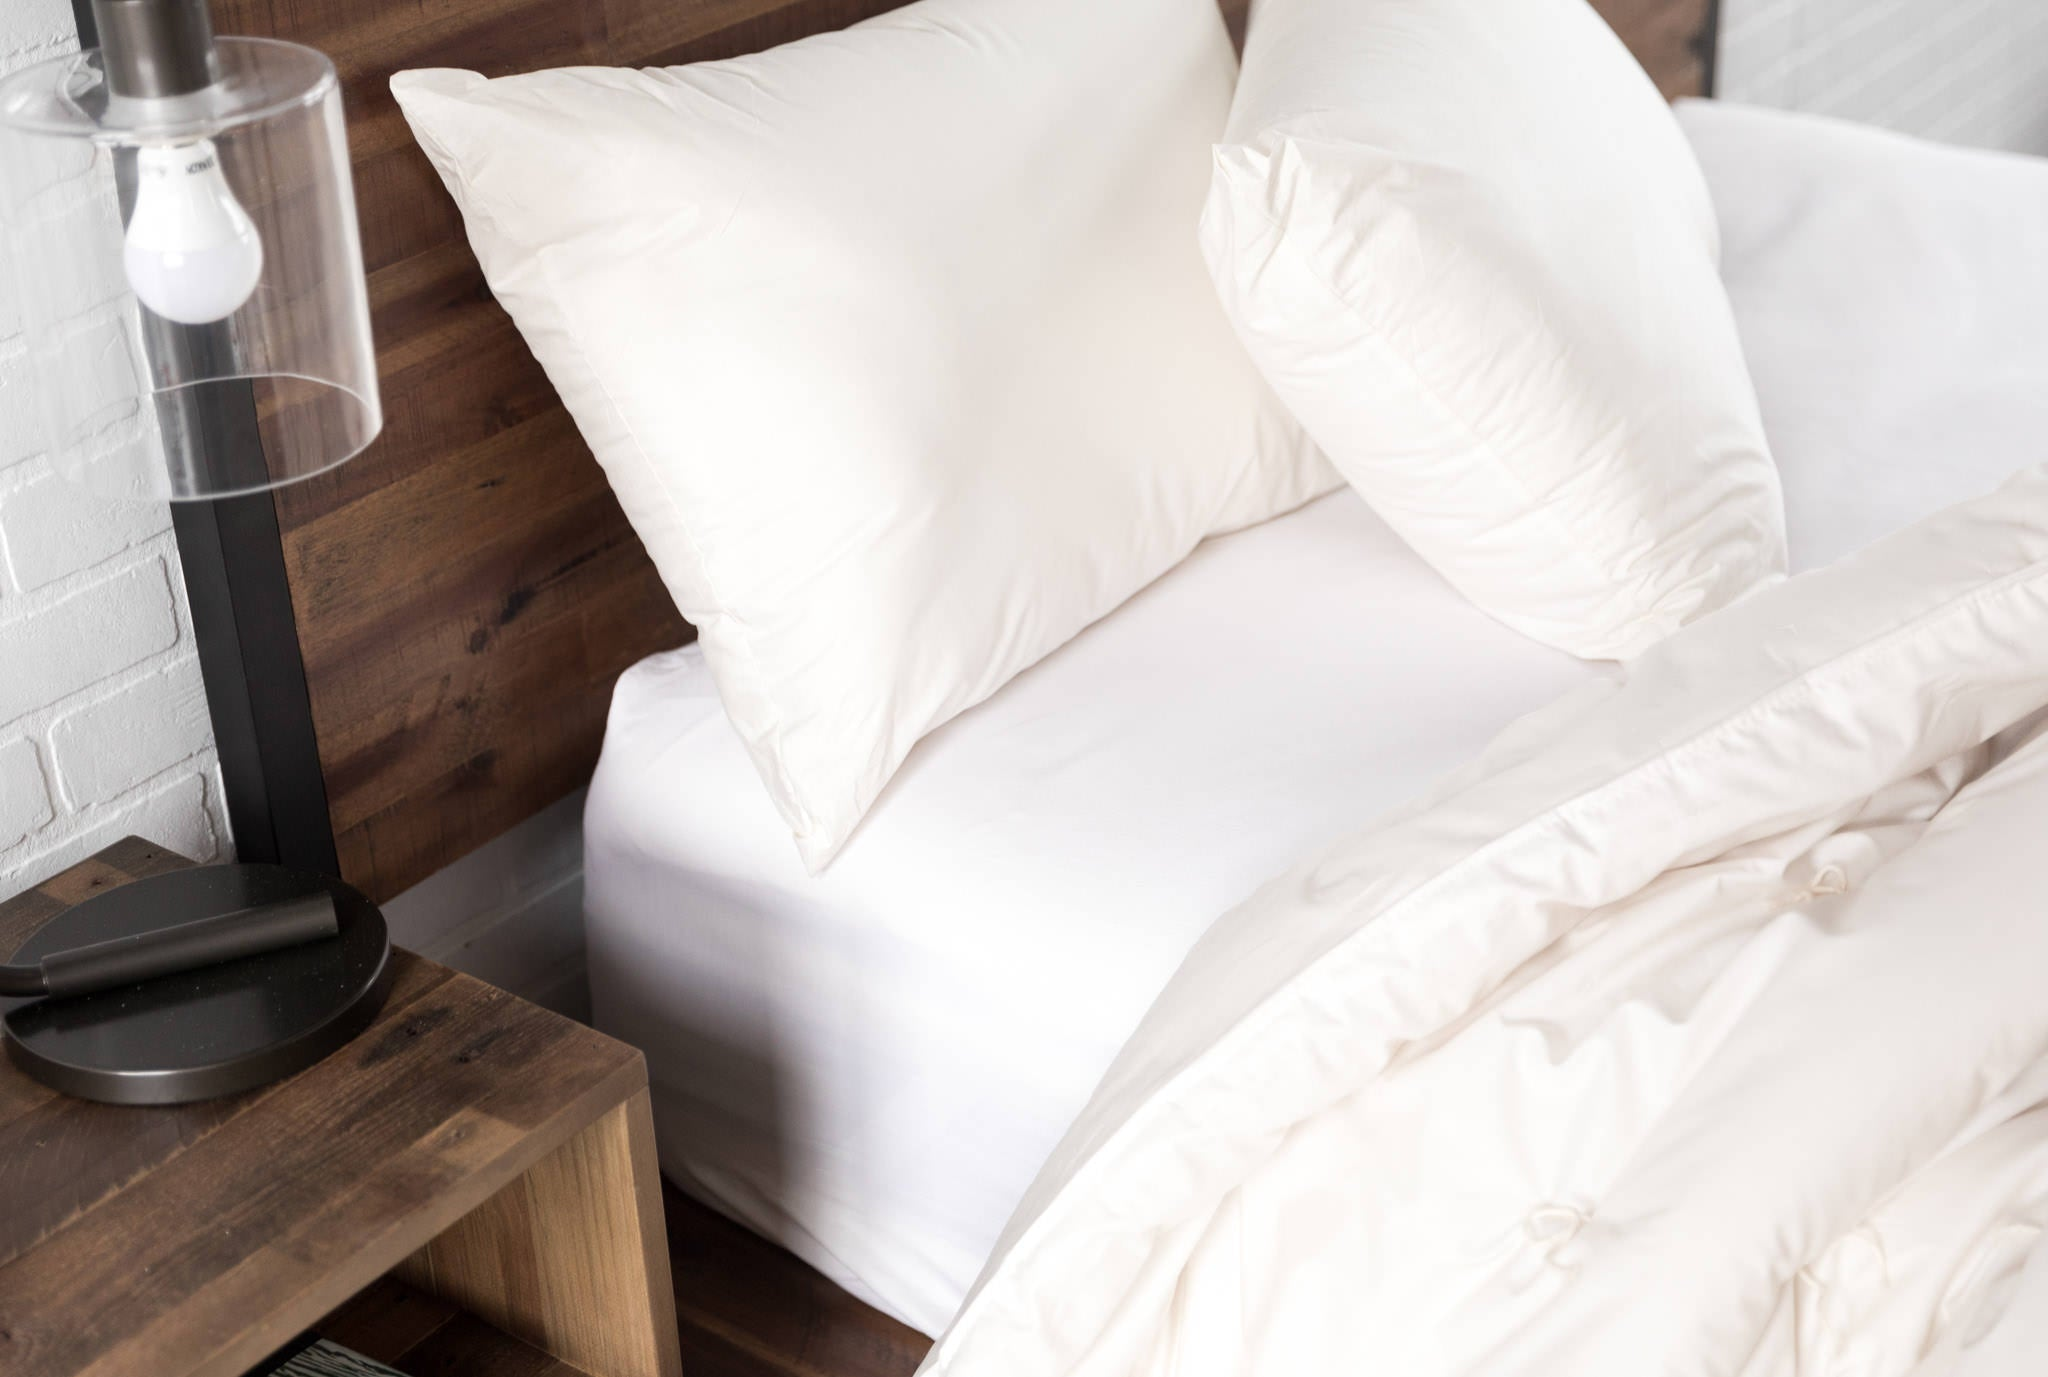 Wool bedding, comforter, pillows, on wood bed with nightstand